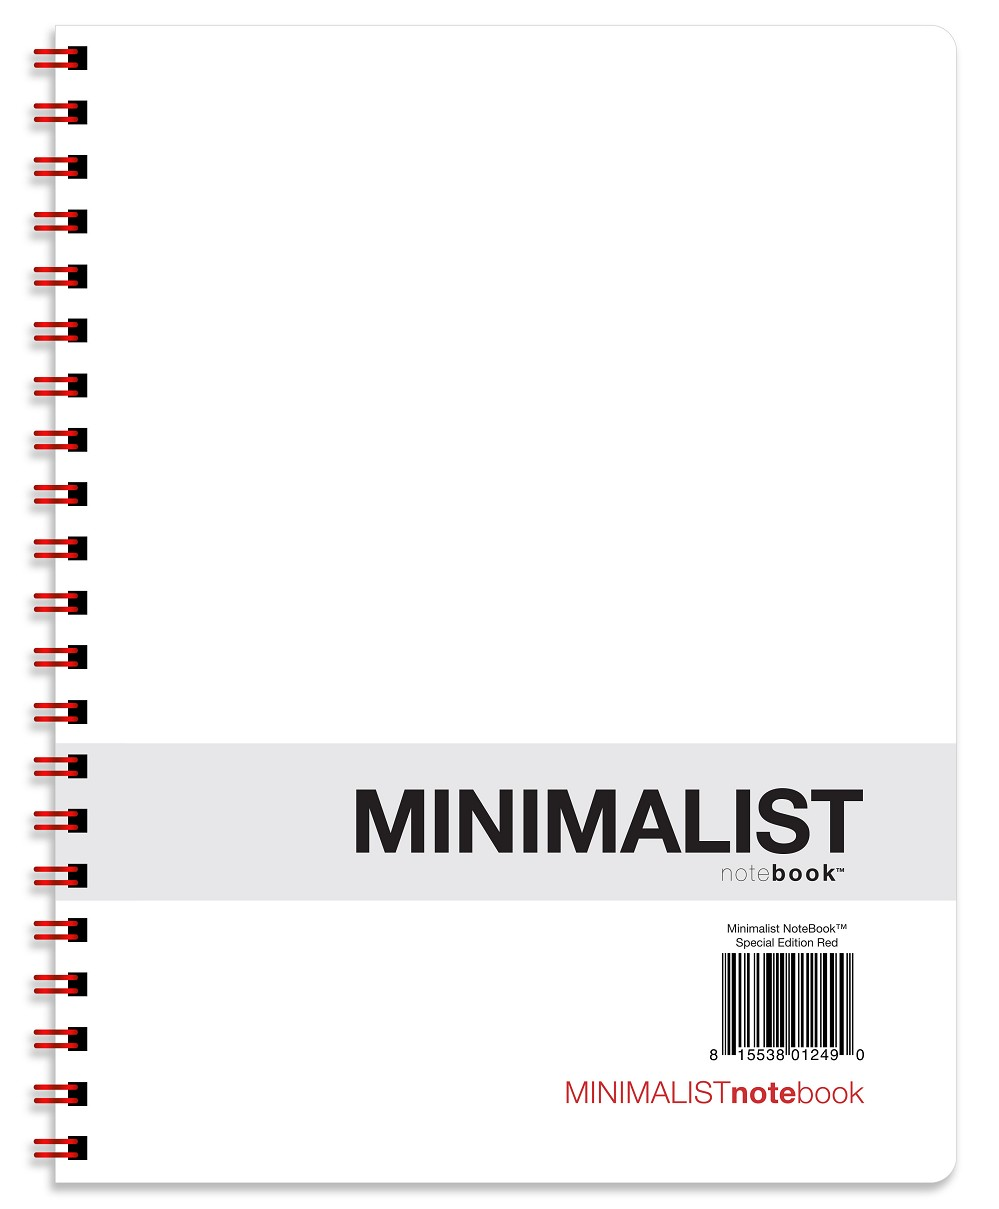 Minimalist NoteBook - Special Edition Red (8.5 x 11 inches)